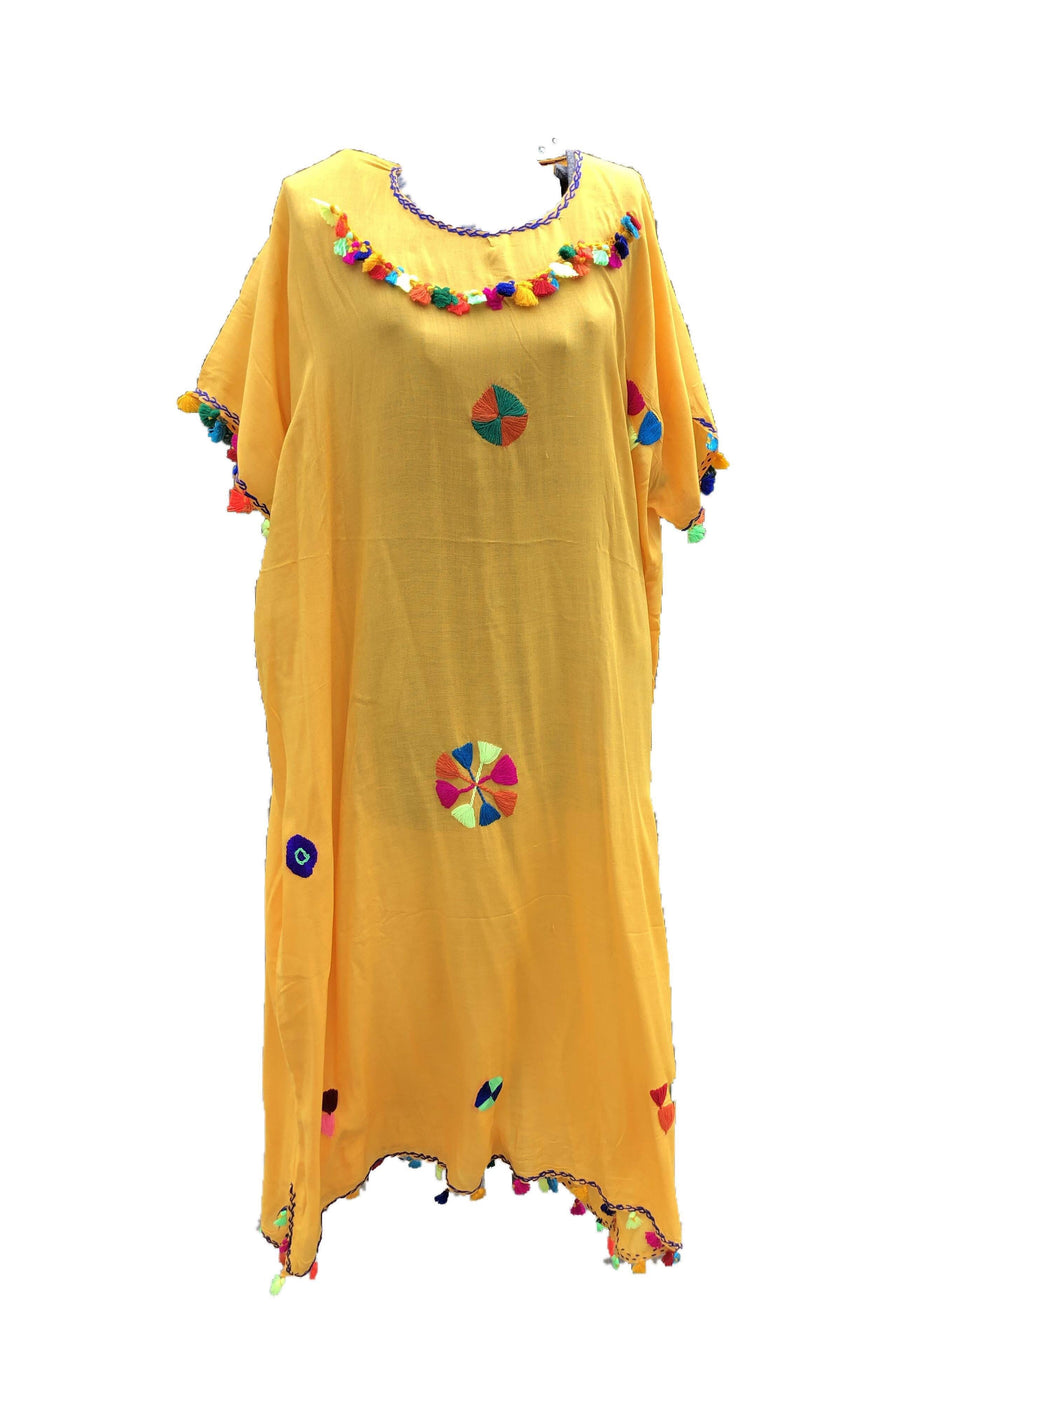 Festive Women's Embroidered Moroccan Lightweight Kaftan Dress with Pompoms - Yellow Kaftans